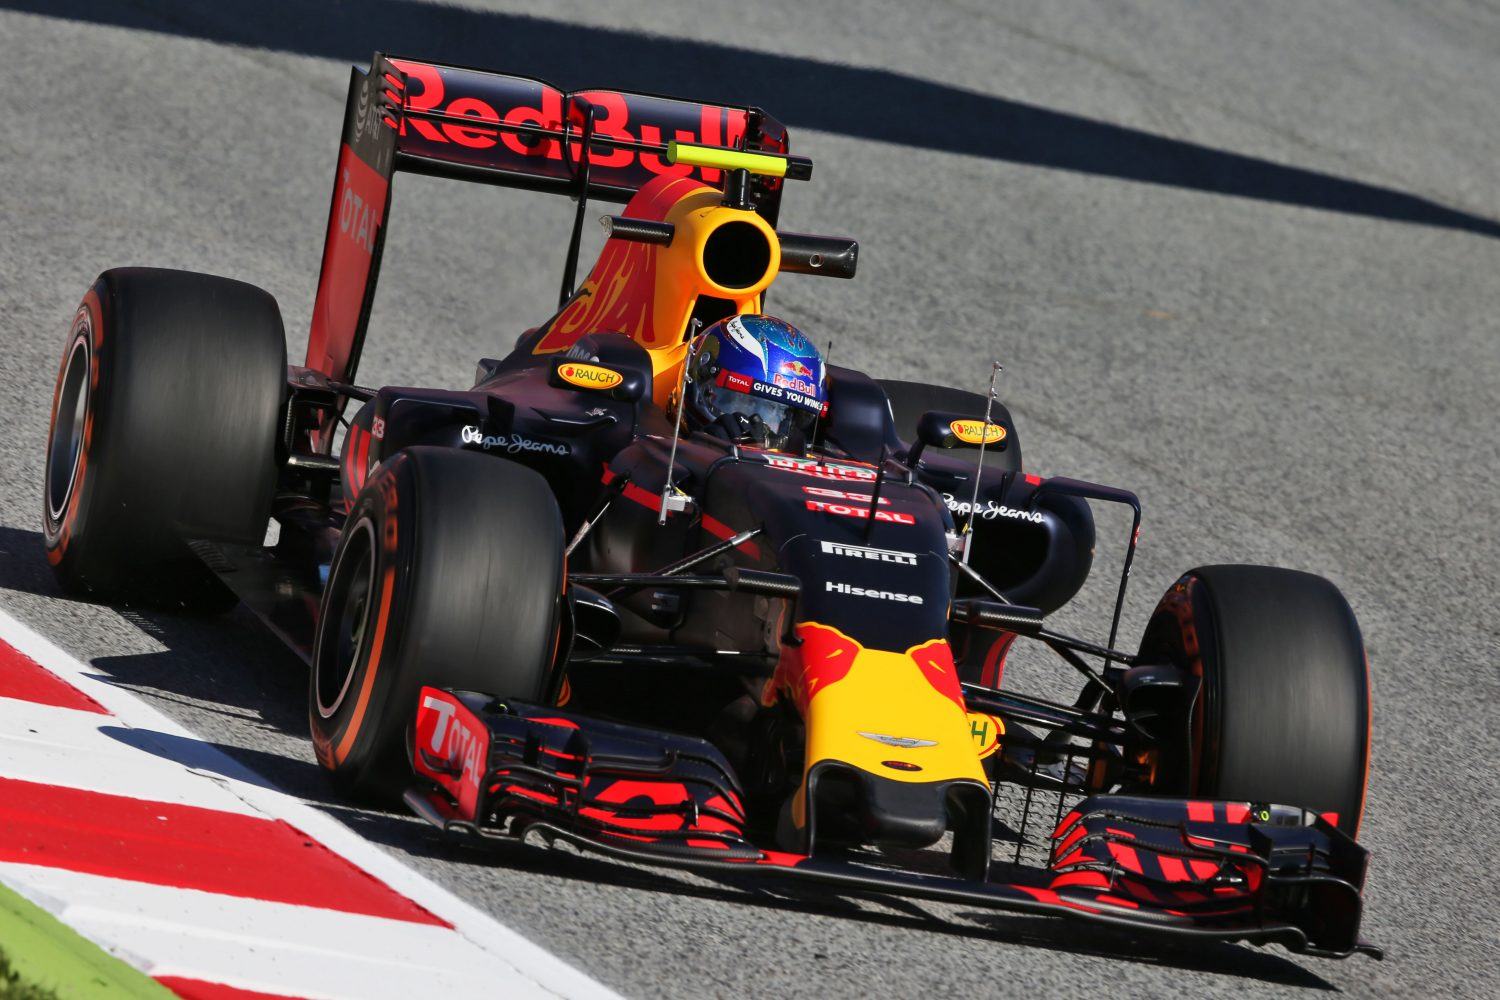 f1 racing Christian horner does not expect sebastien buemi to return to racing in formula 1 despite the red bull reserve driver appearing to be a strong candidate for toro rosso.